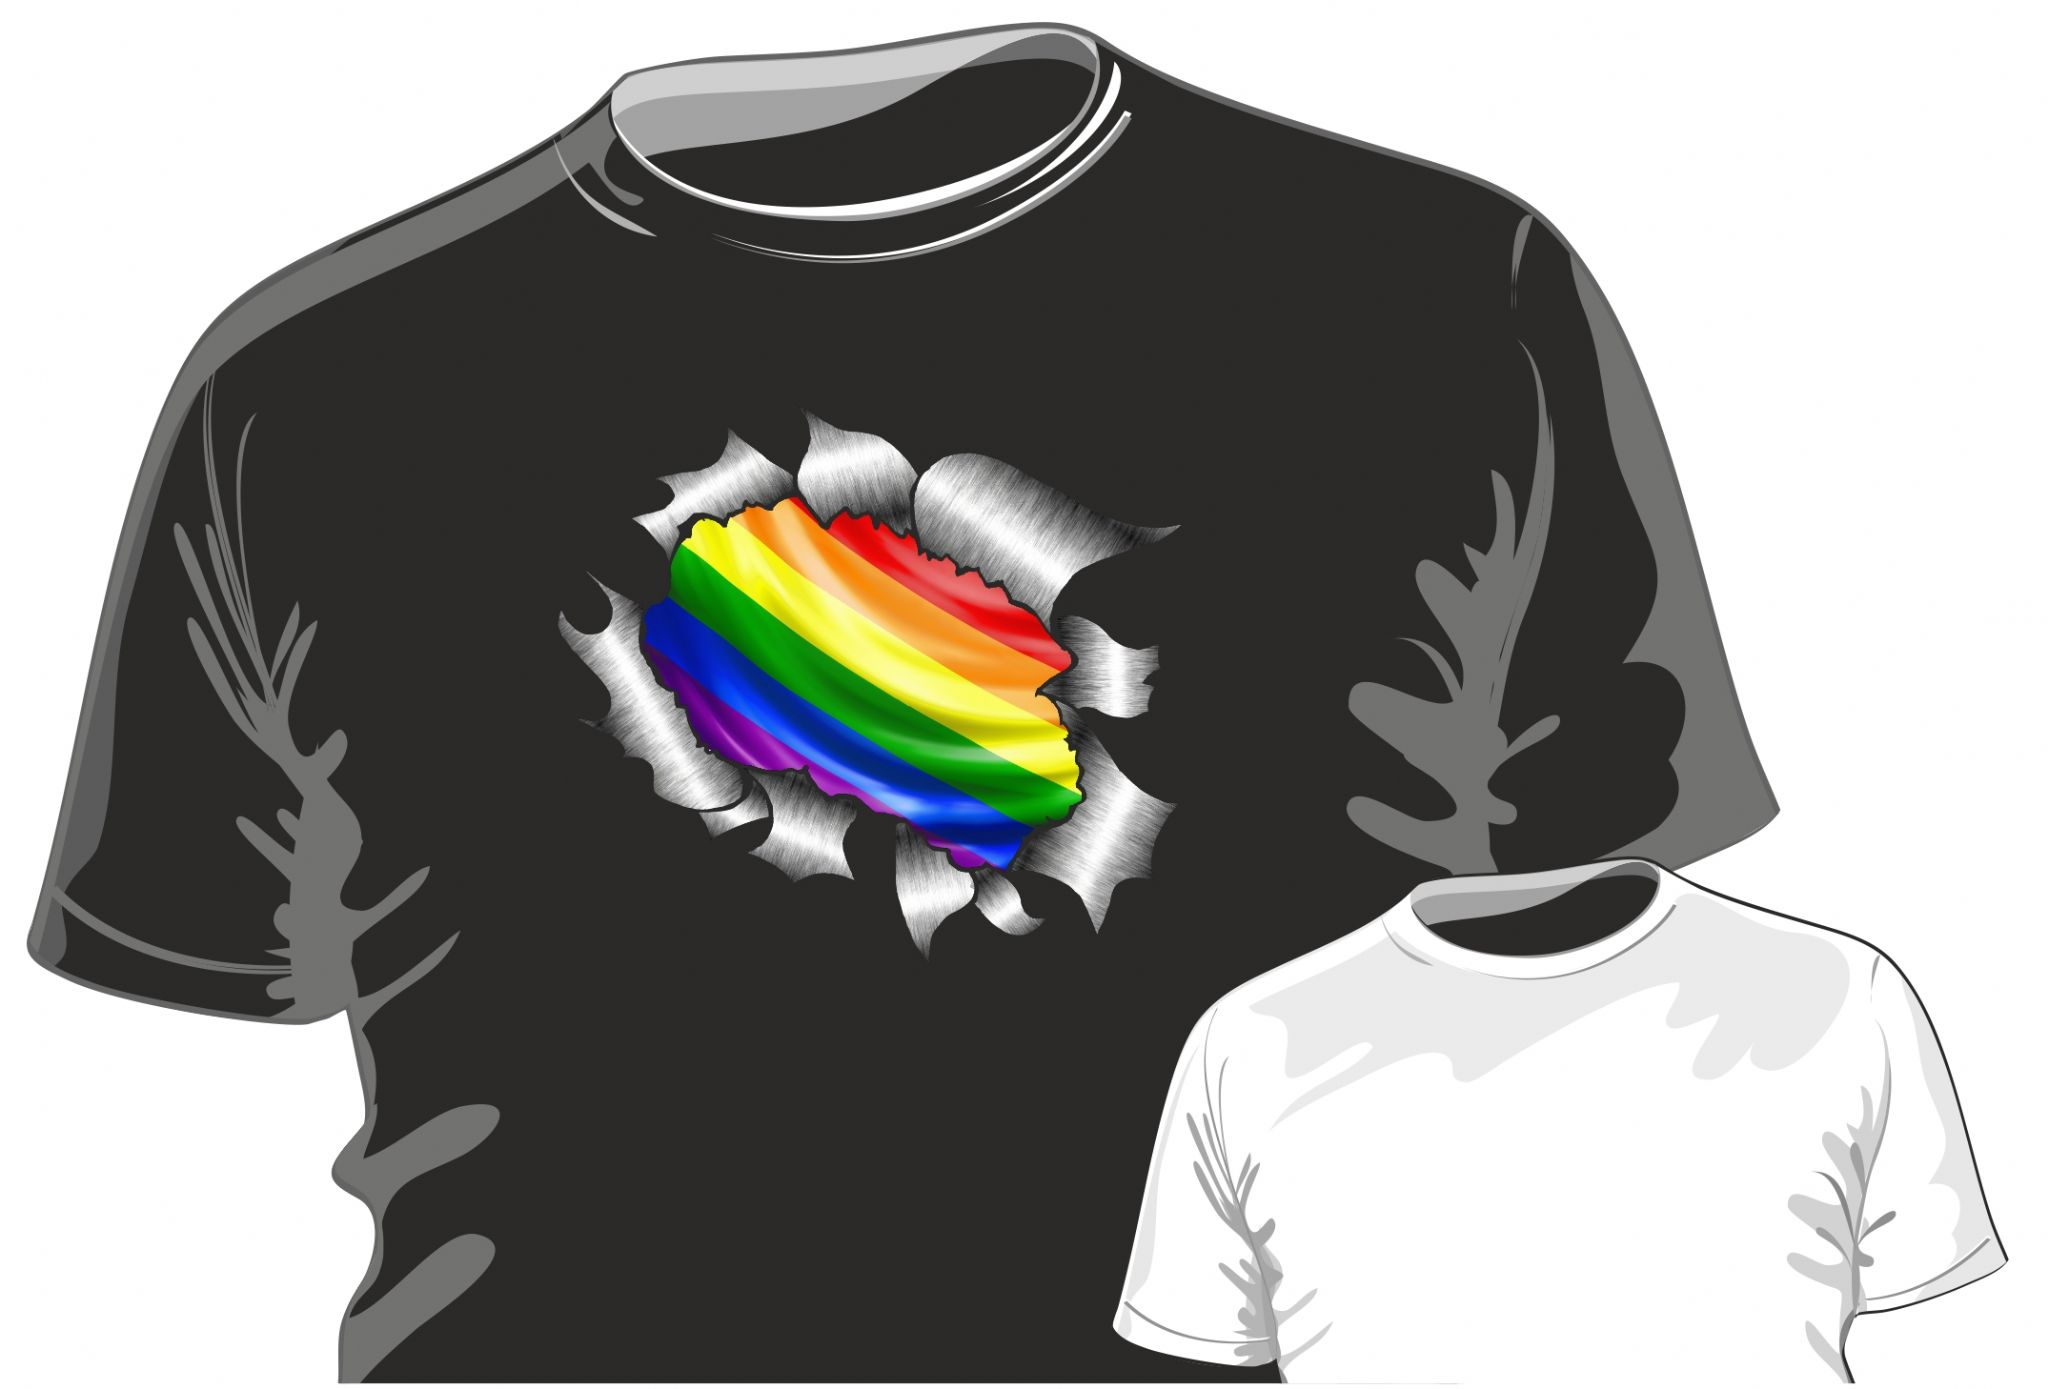 ce07431c15 ripped-torn-metal-design-with-lgbt-gay-pride-rainbow -flag-motif-mens-or-ladyfit-t-shirt-15917-p.jpg